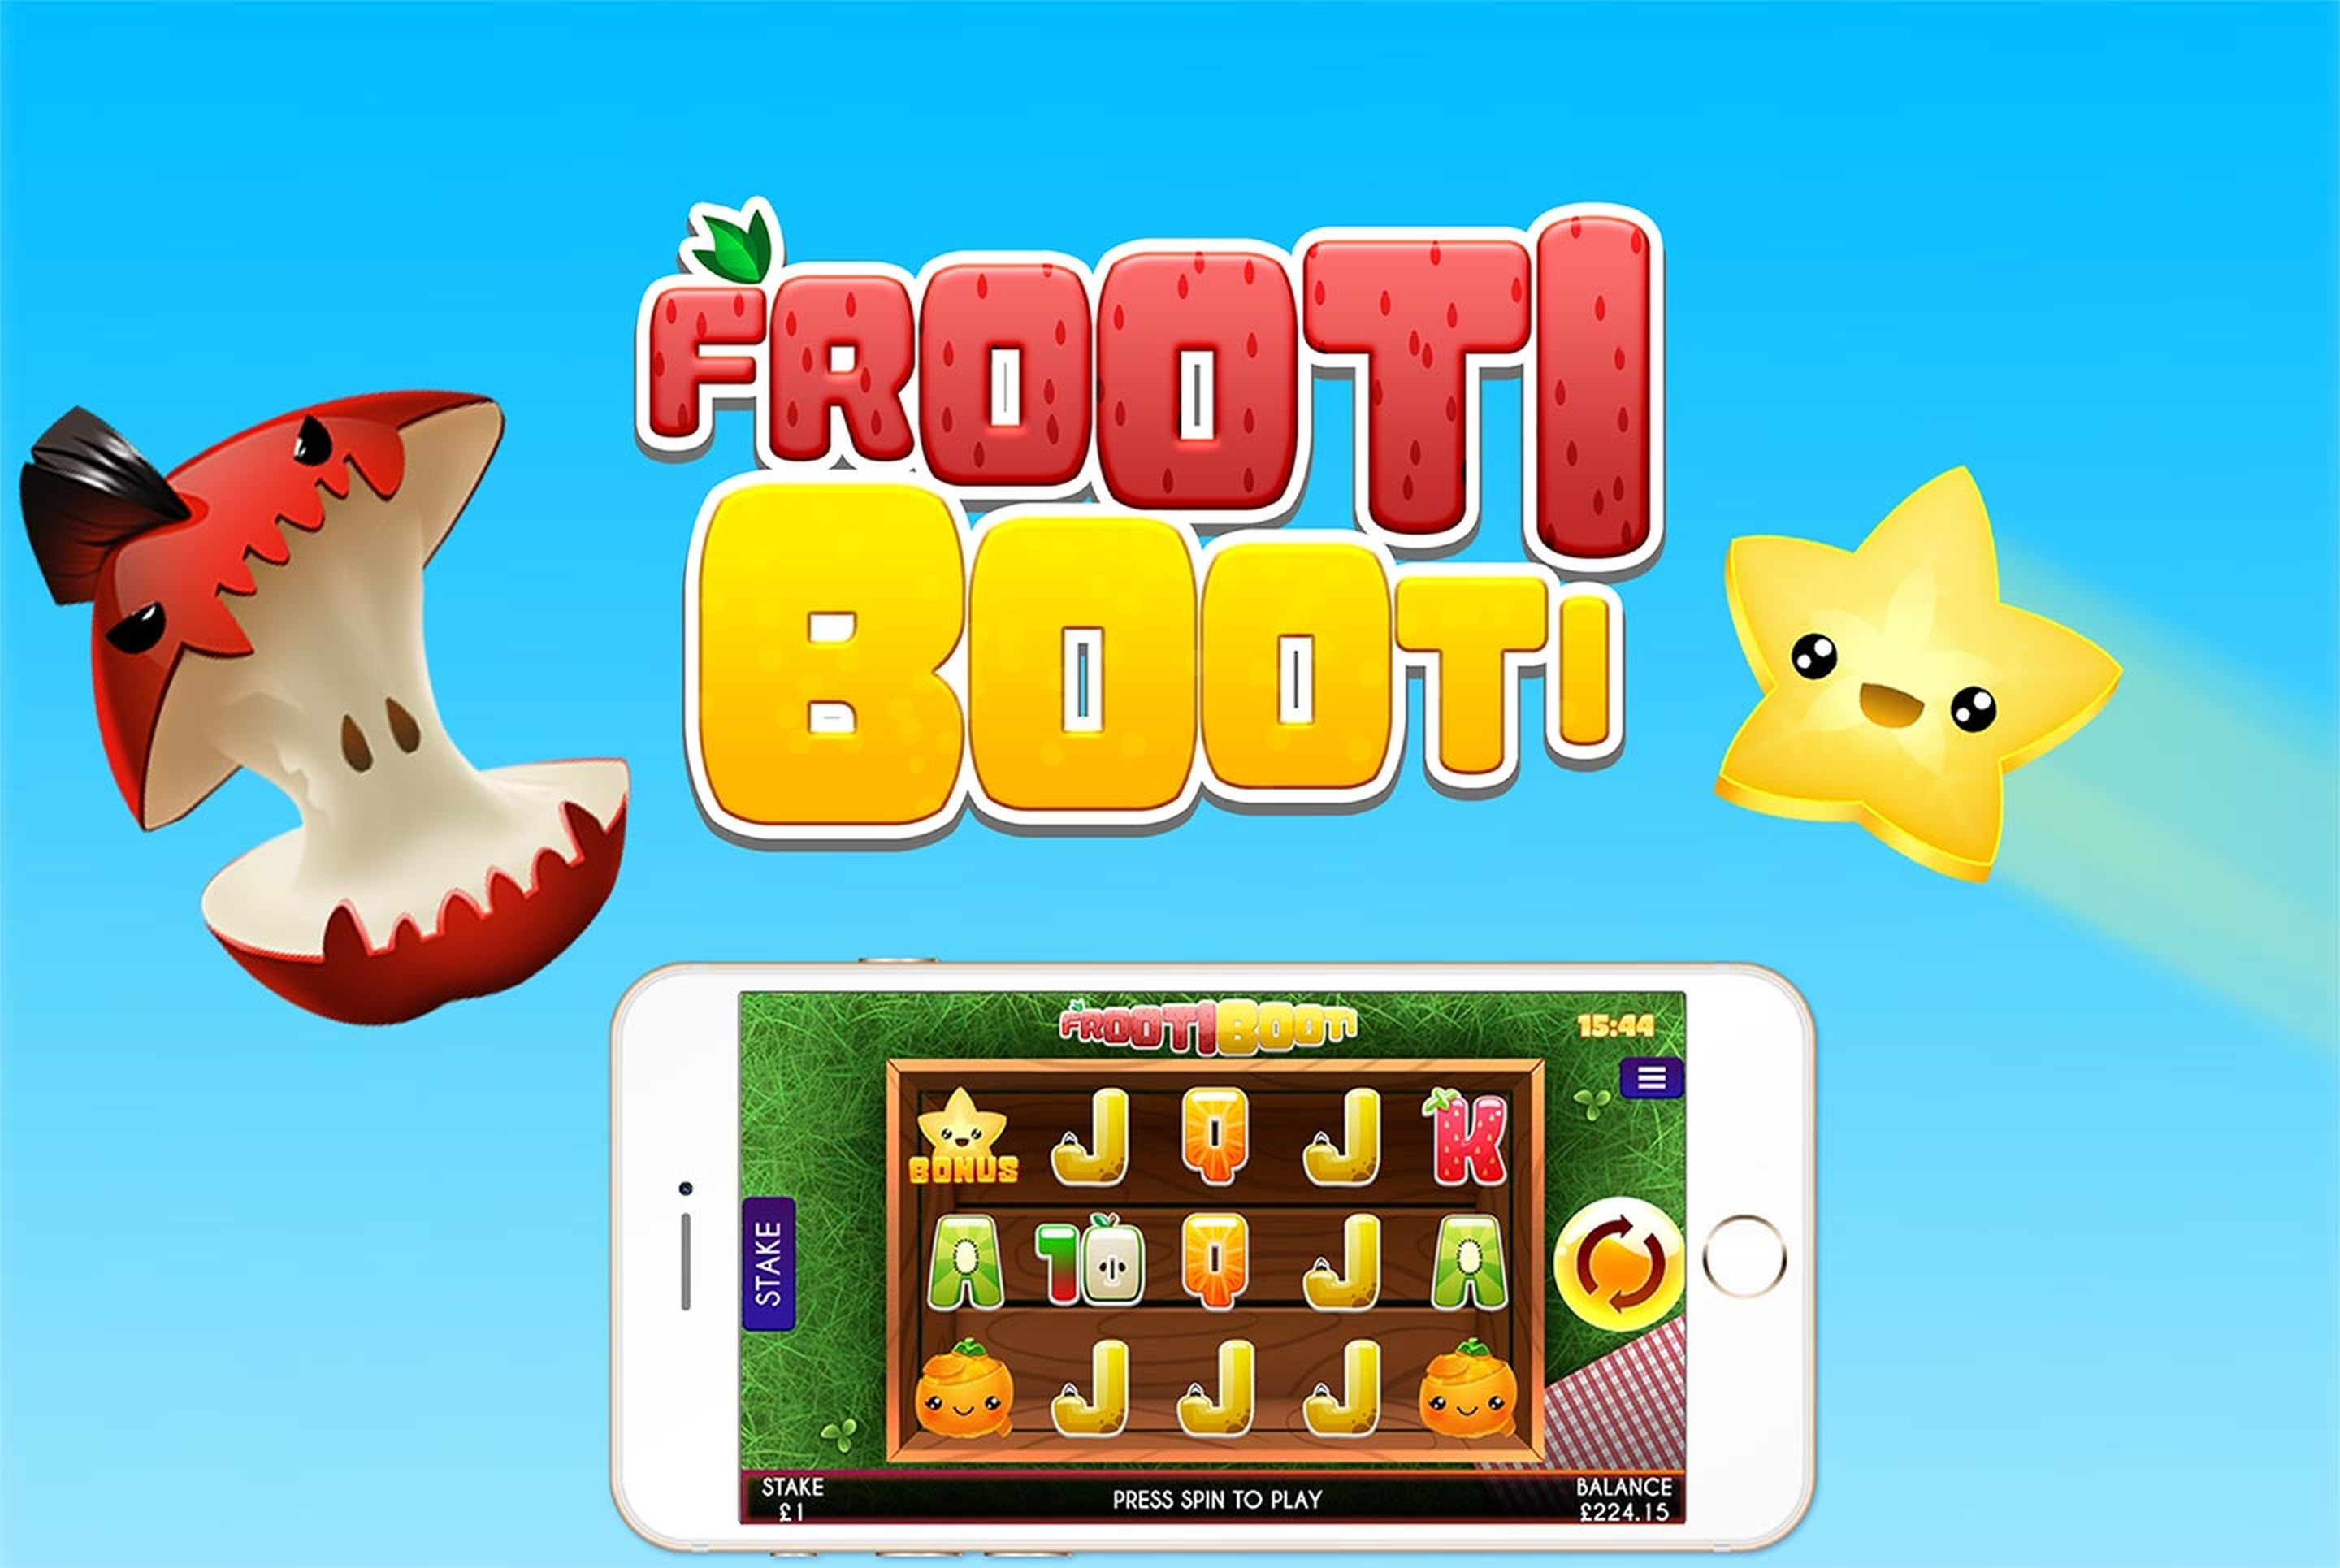 The Frooti Booti Online Slot Demo Game by Slingo